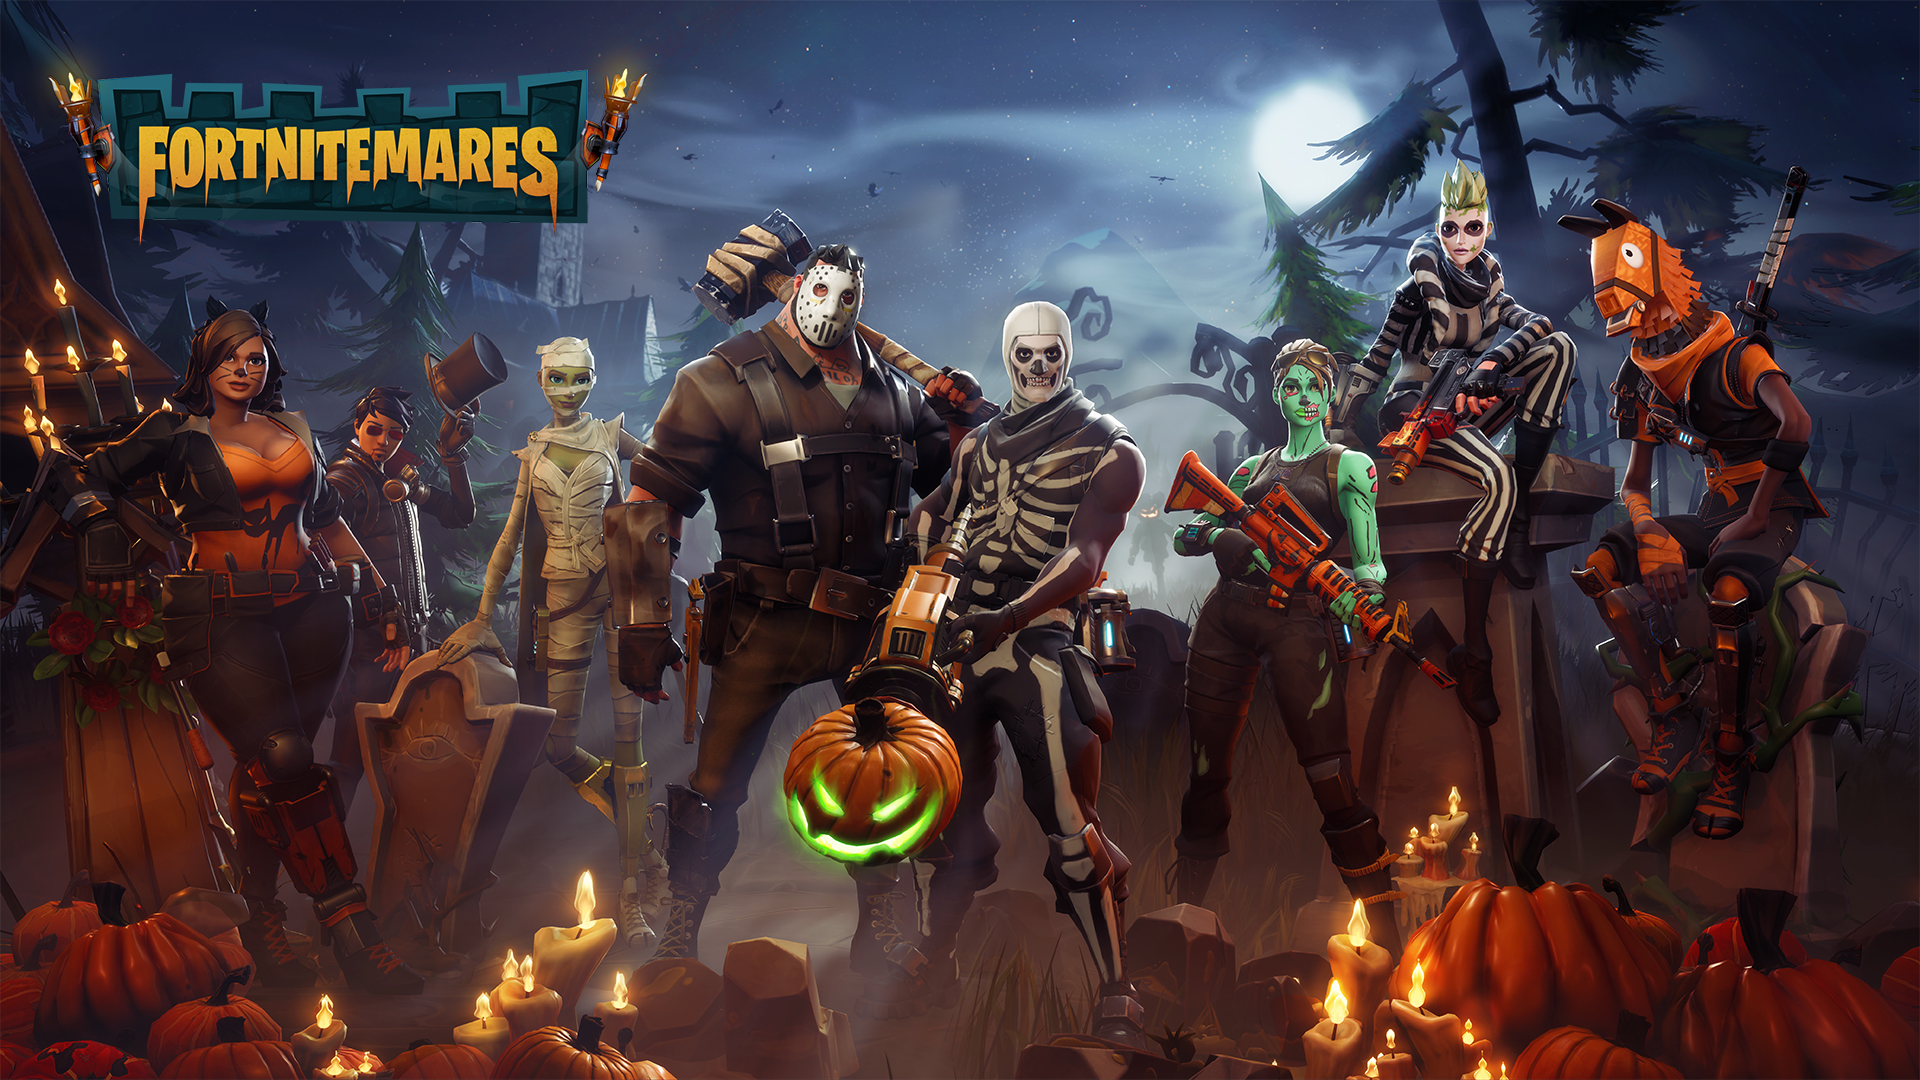 Fortnite Gets Spooky with Fortnitemares Update   n3rdabl3 1920x1080